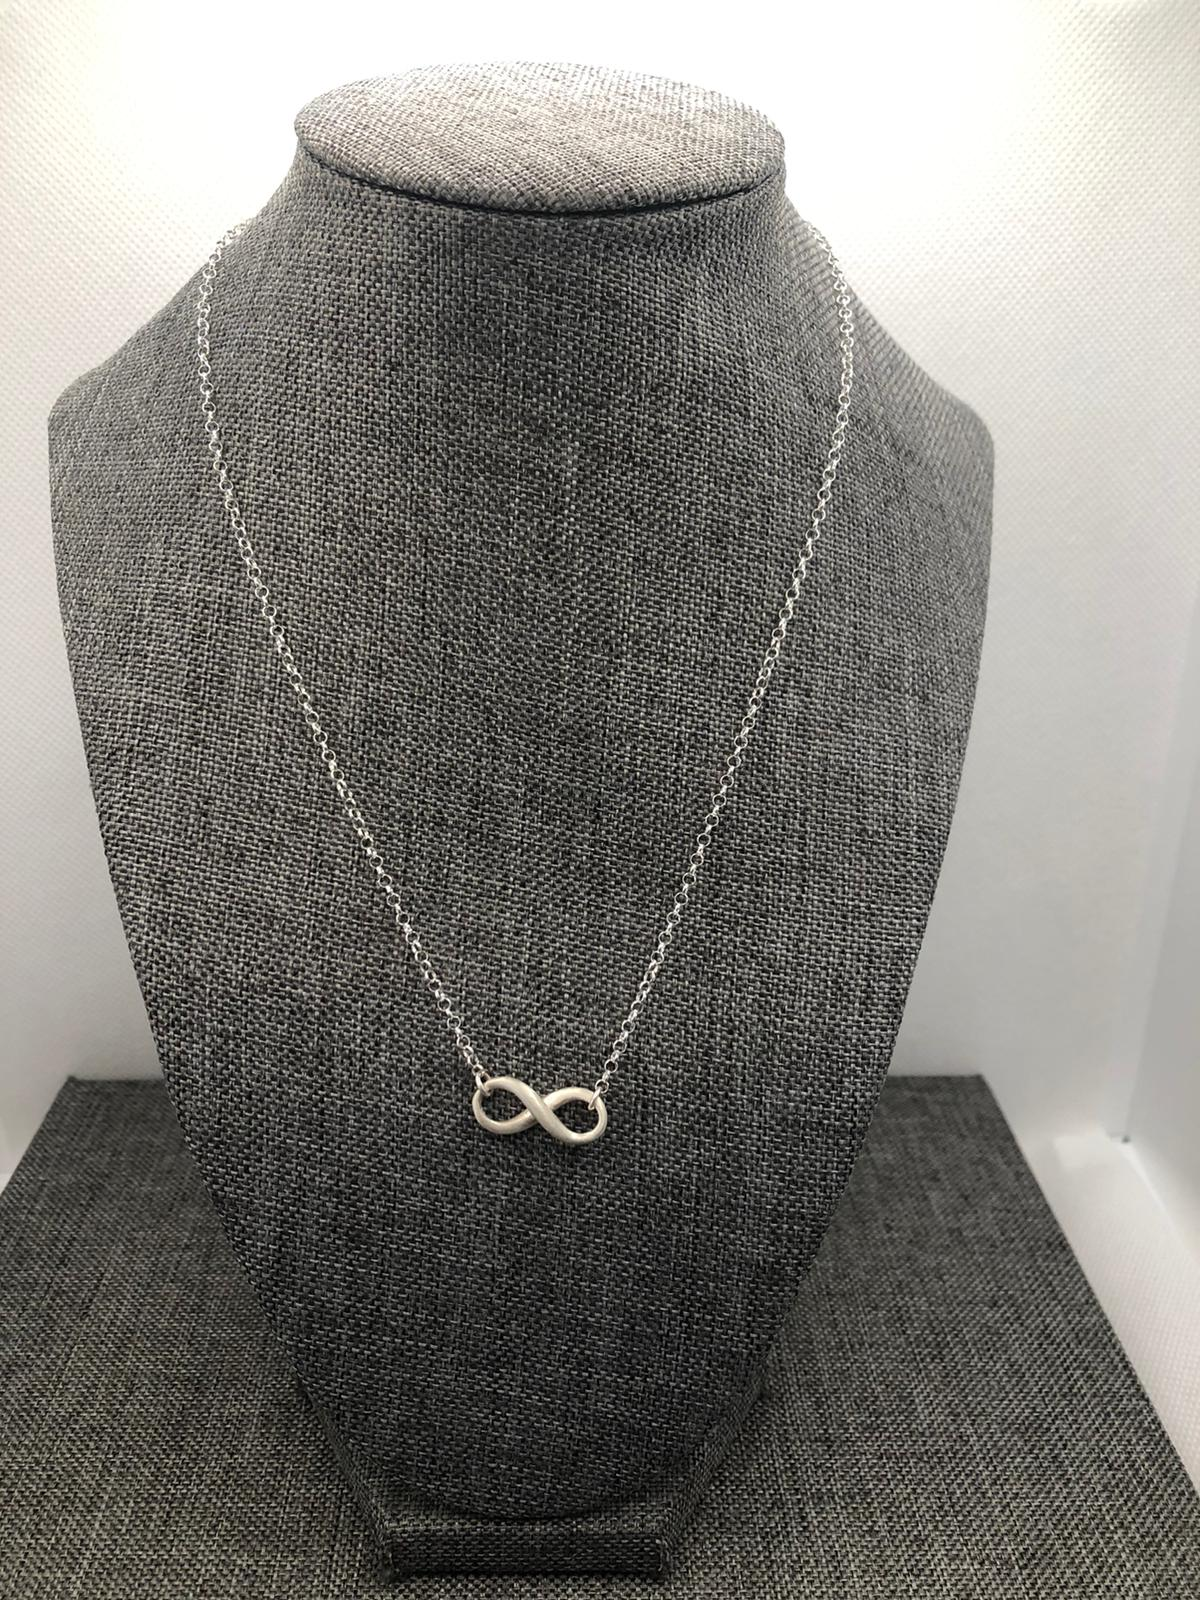 Infinity Necklace, Sterling Silver (Matt Finish) by Chris Lewis